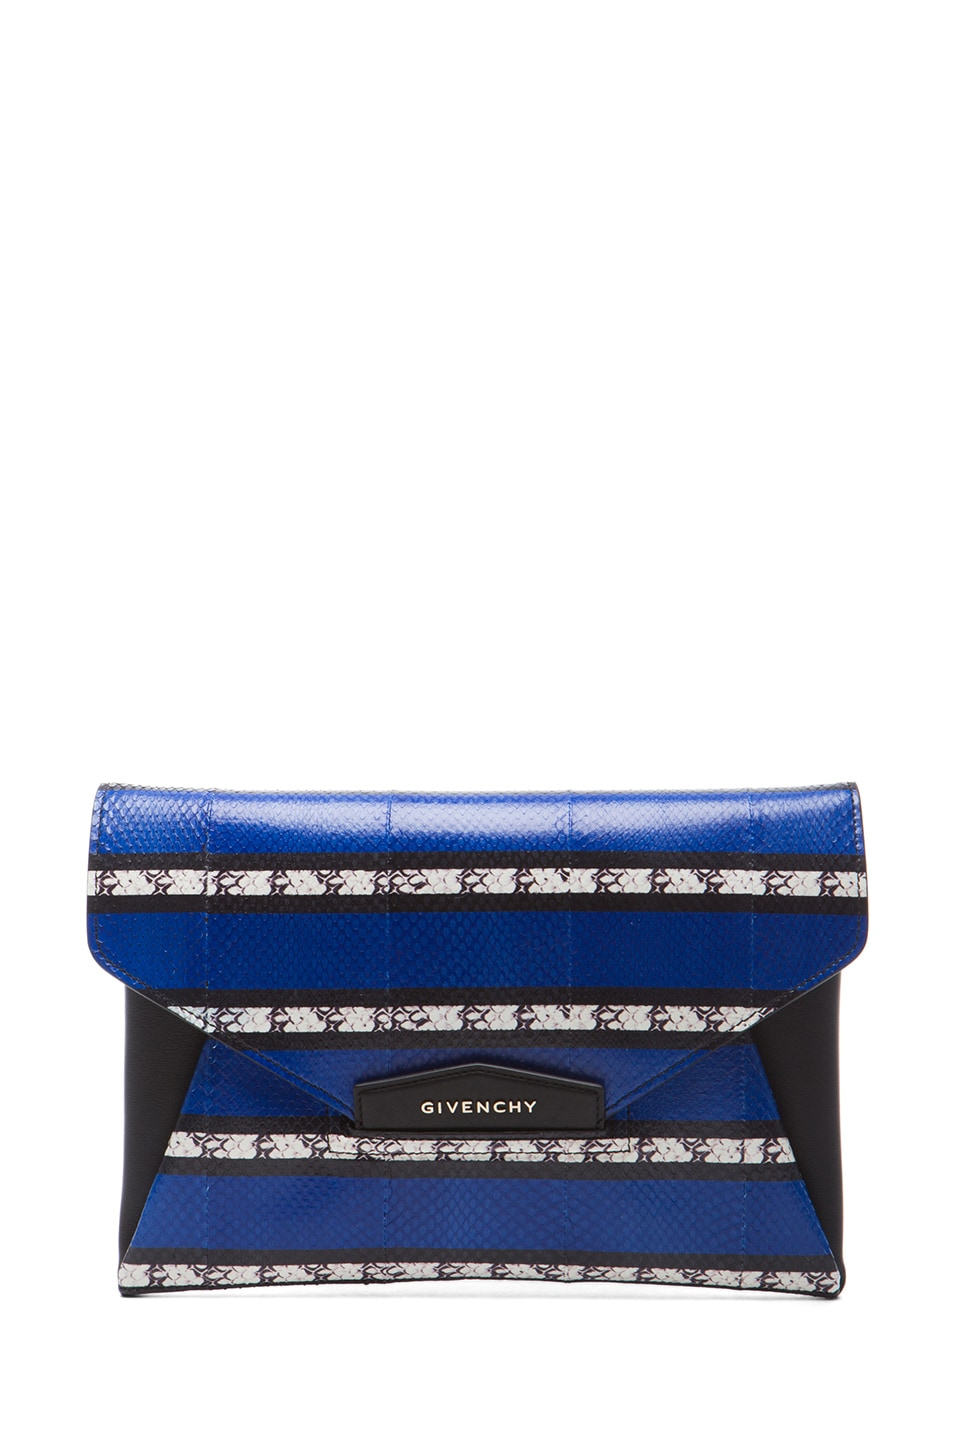 Image 1 of GIVENCHY Medium Ayers Antigona Envelope Clutch in Blue Stripe